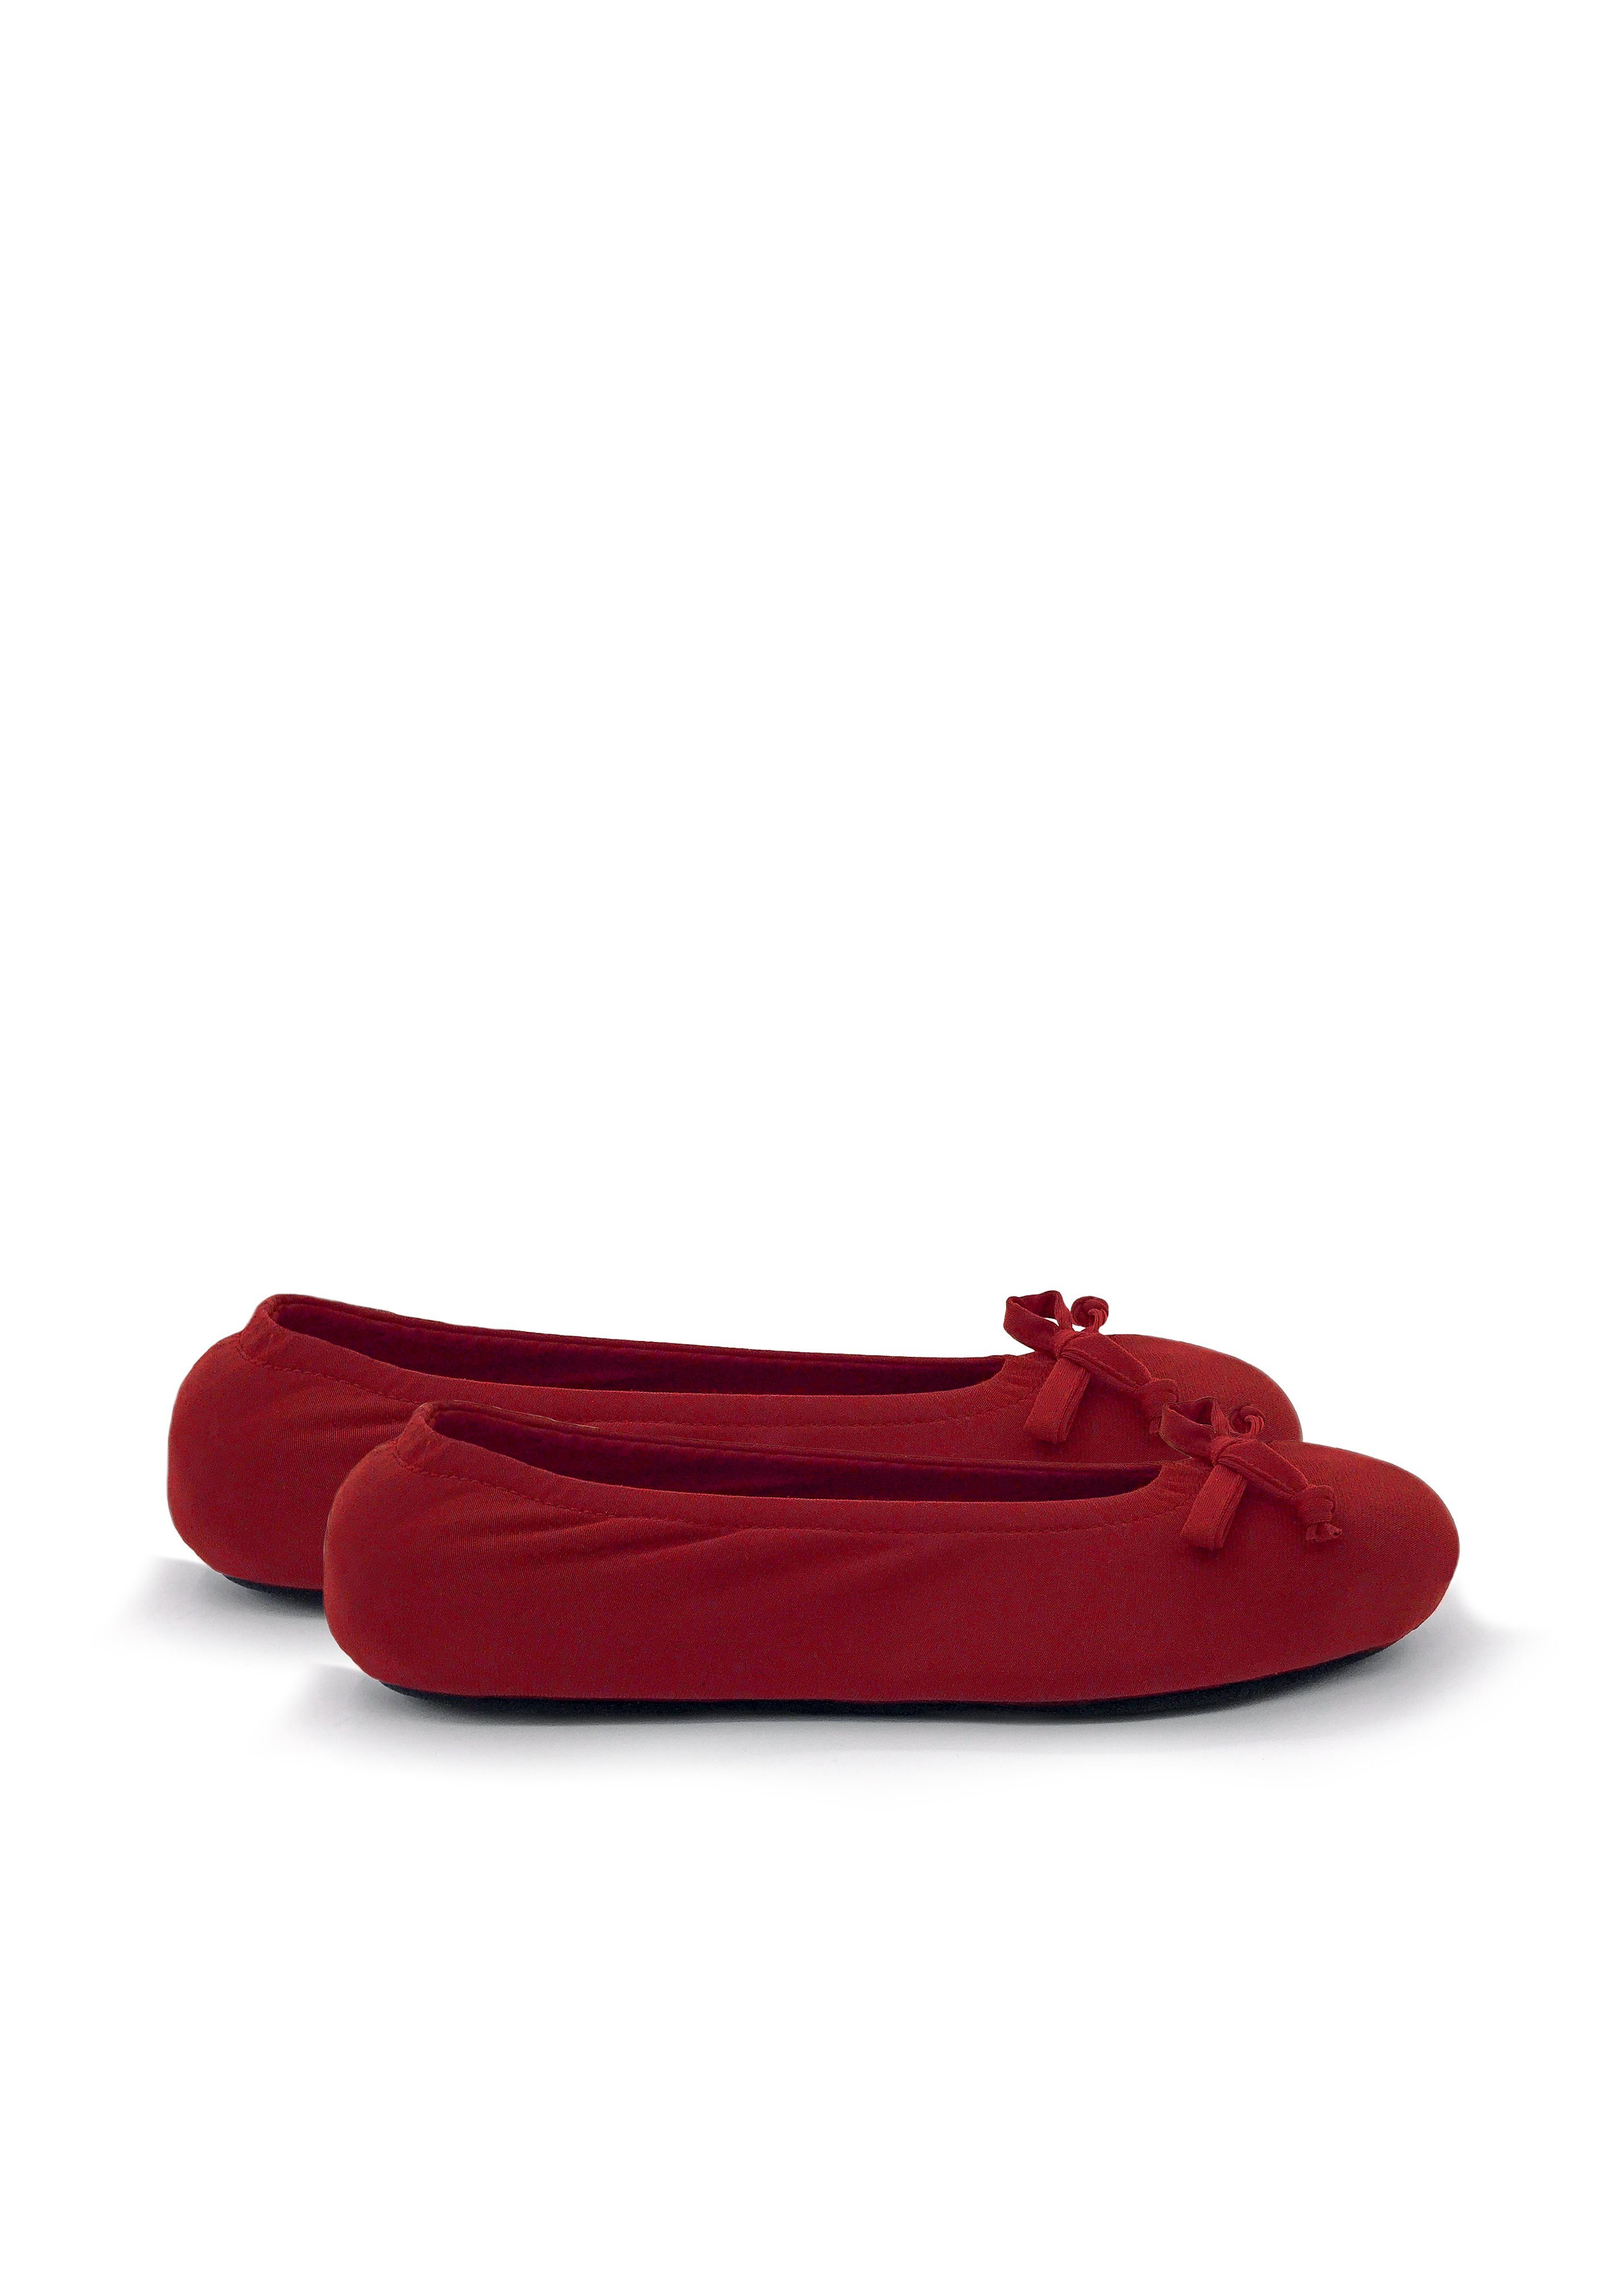 Ballerina Slippers - Red - Women's Clothing -ROSARINI